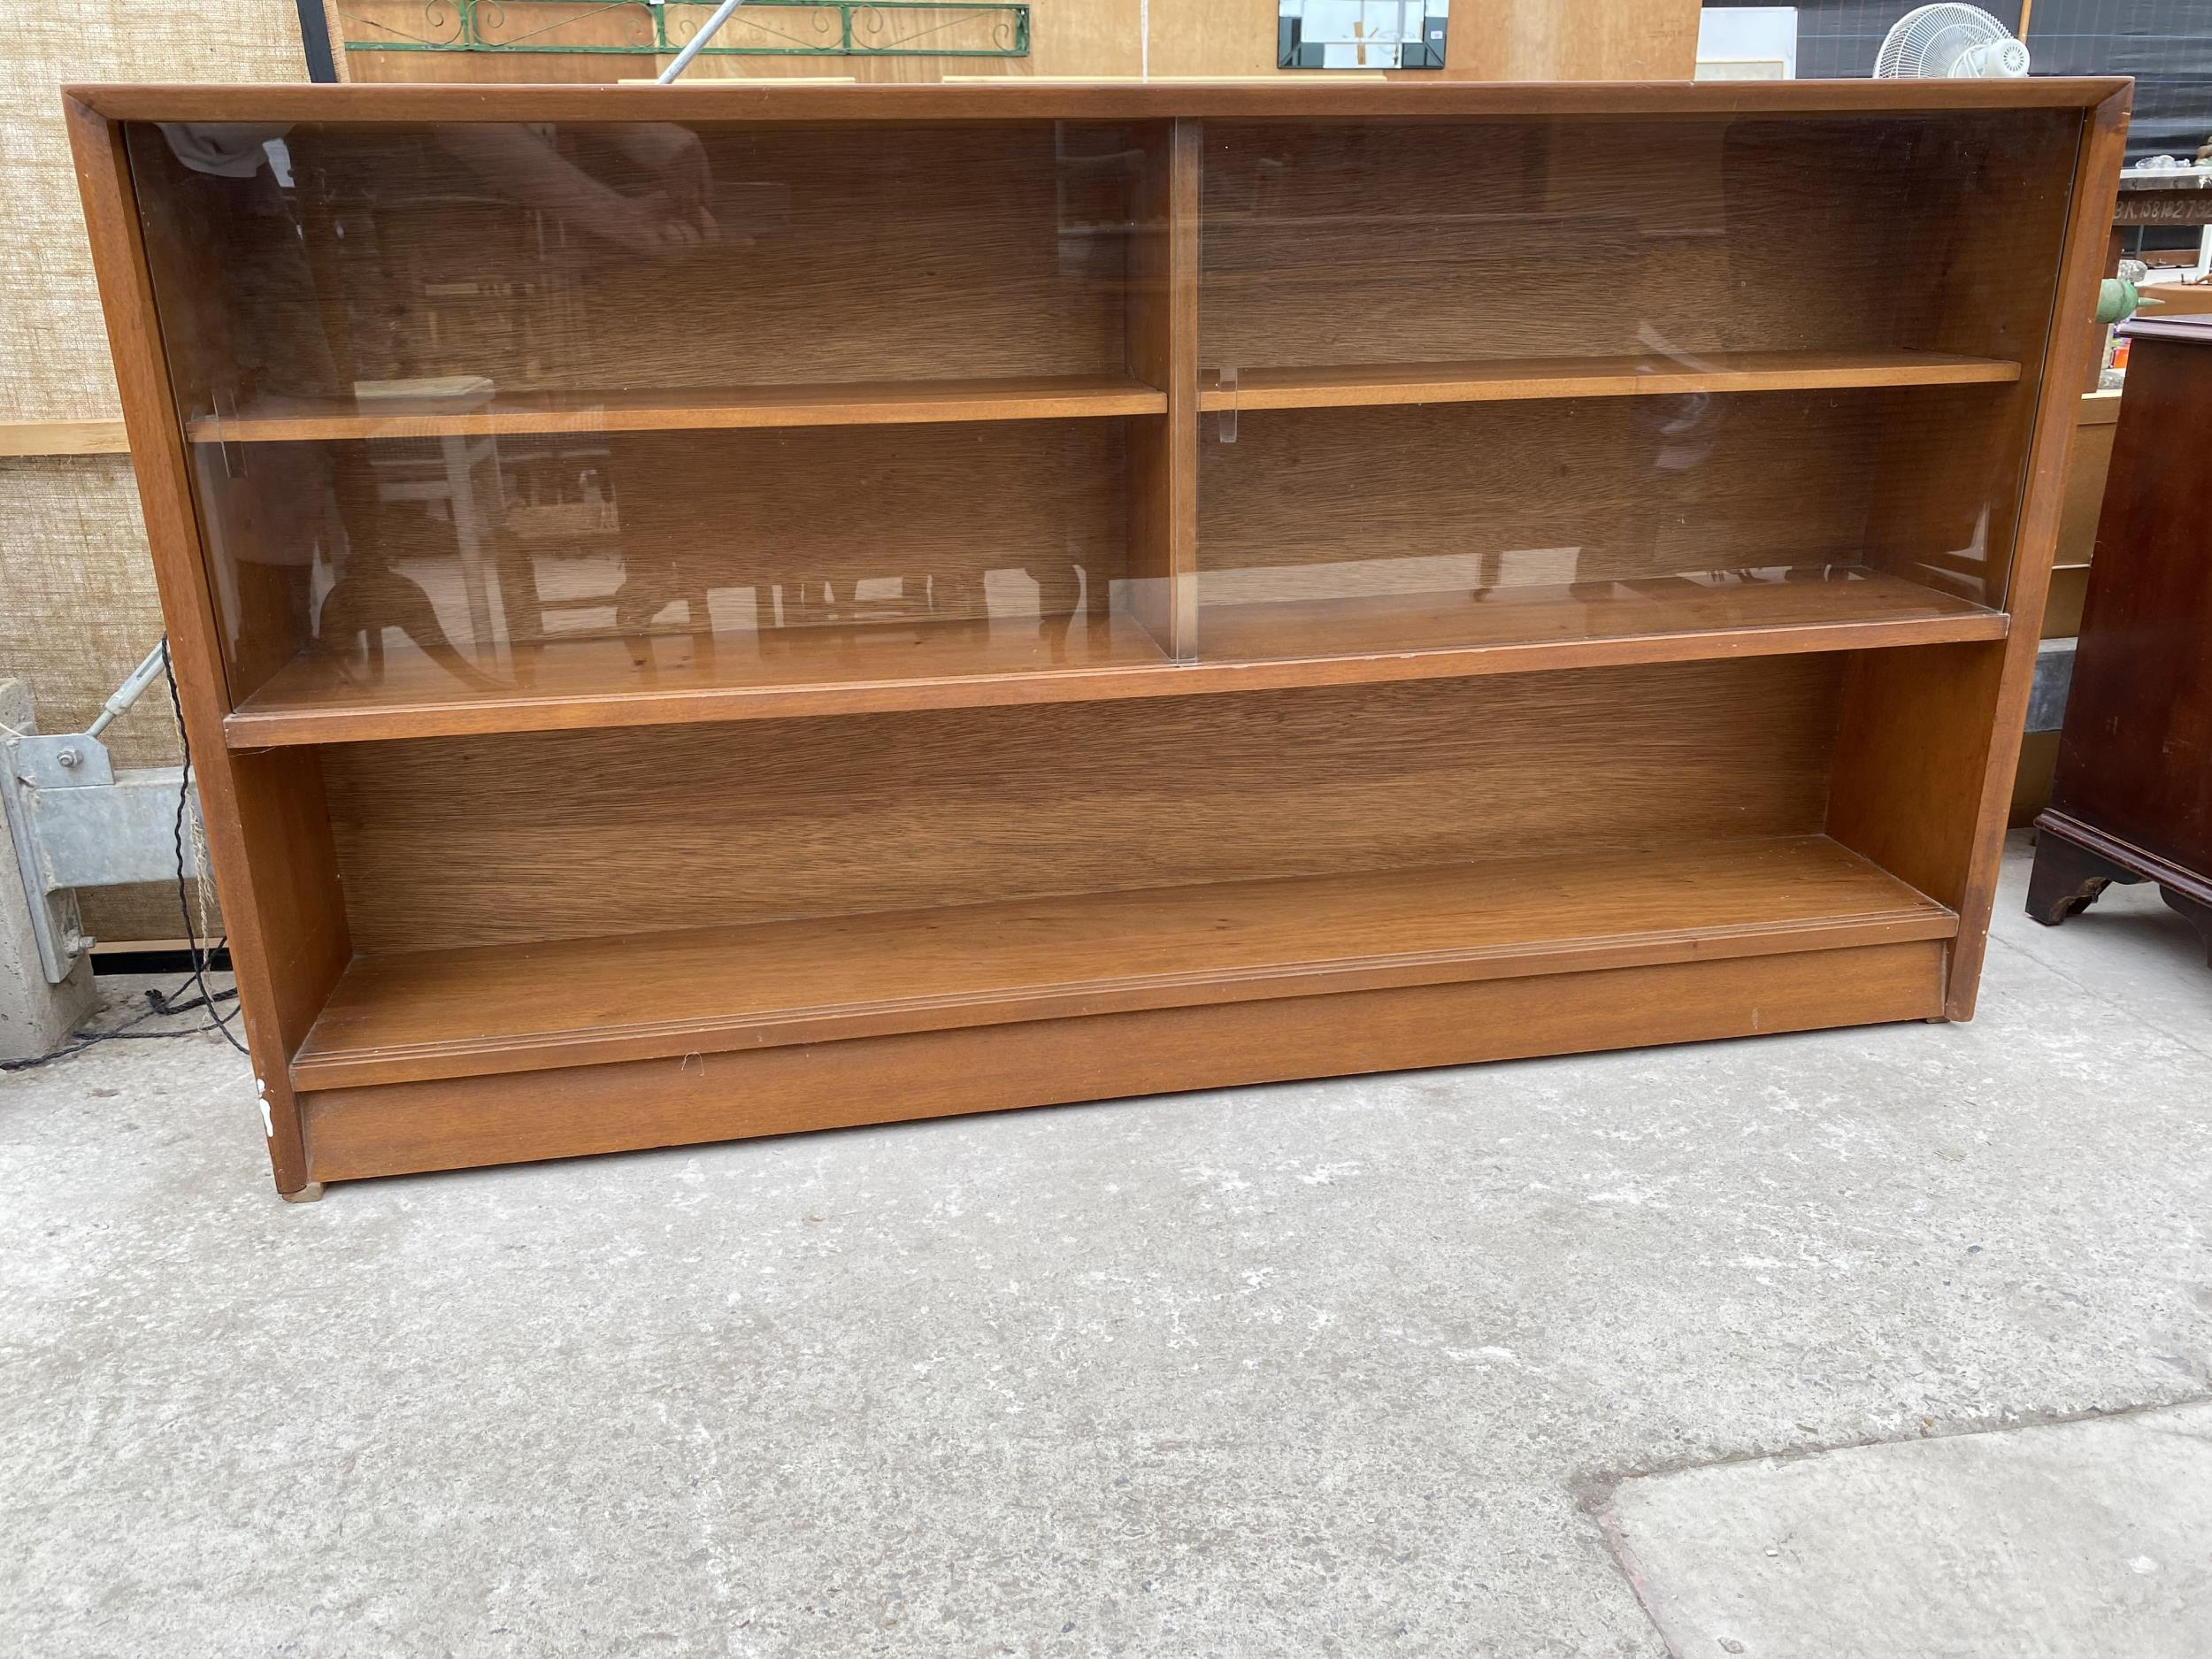 """A RETRO TEAK HERBENT AND GIBBS GLASS FRAMED BOOKCASE 60"""" WIDE - Image 2 of 6"""